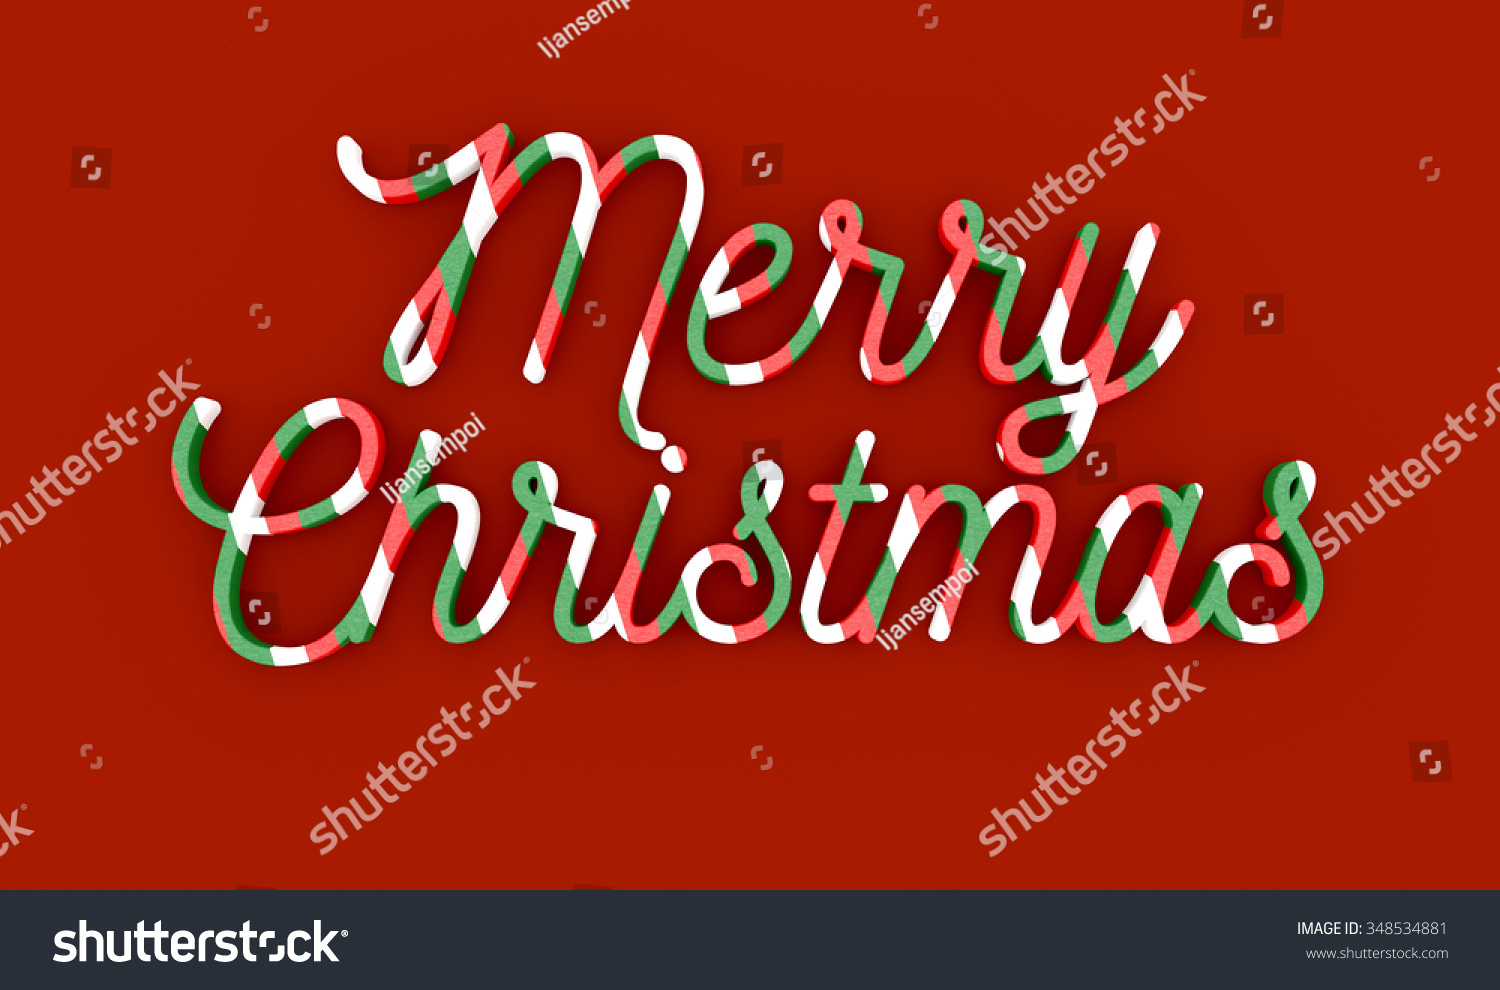 Merry Christmas Wording On Red Background Stock Illustration